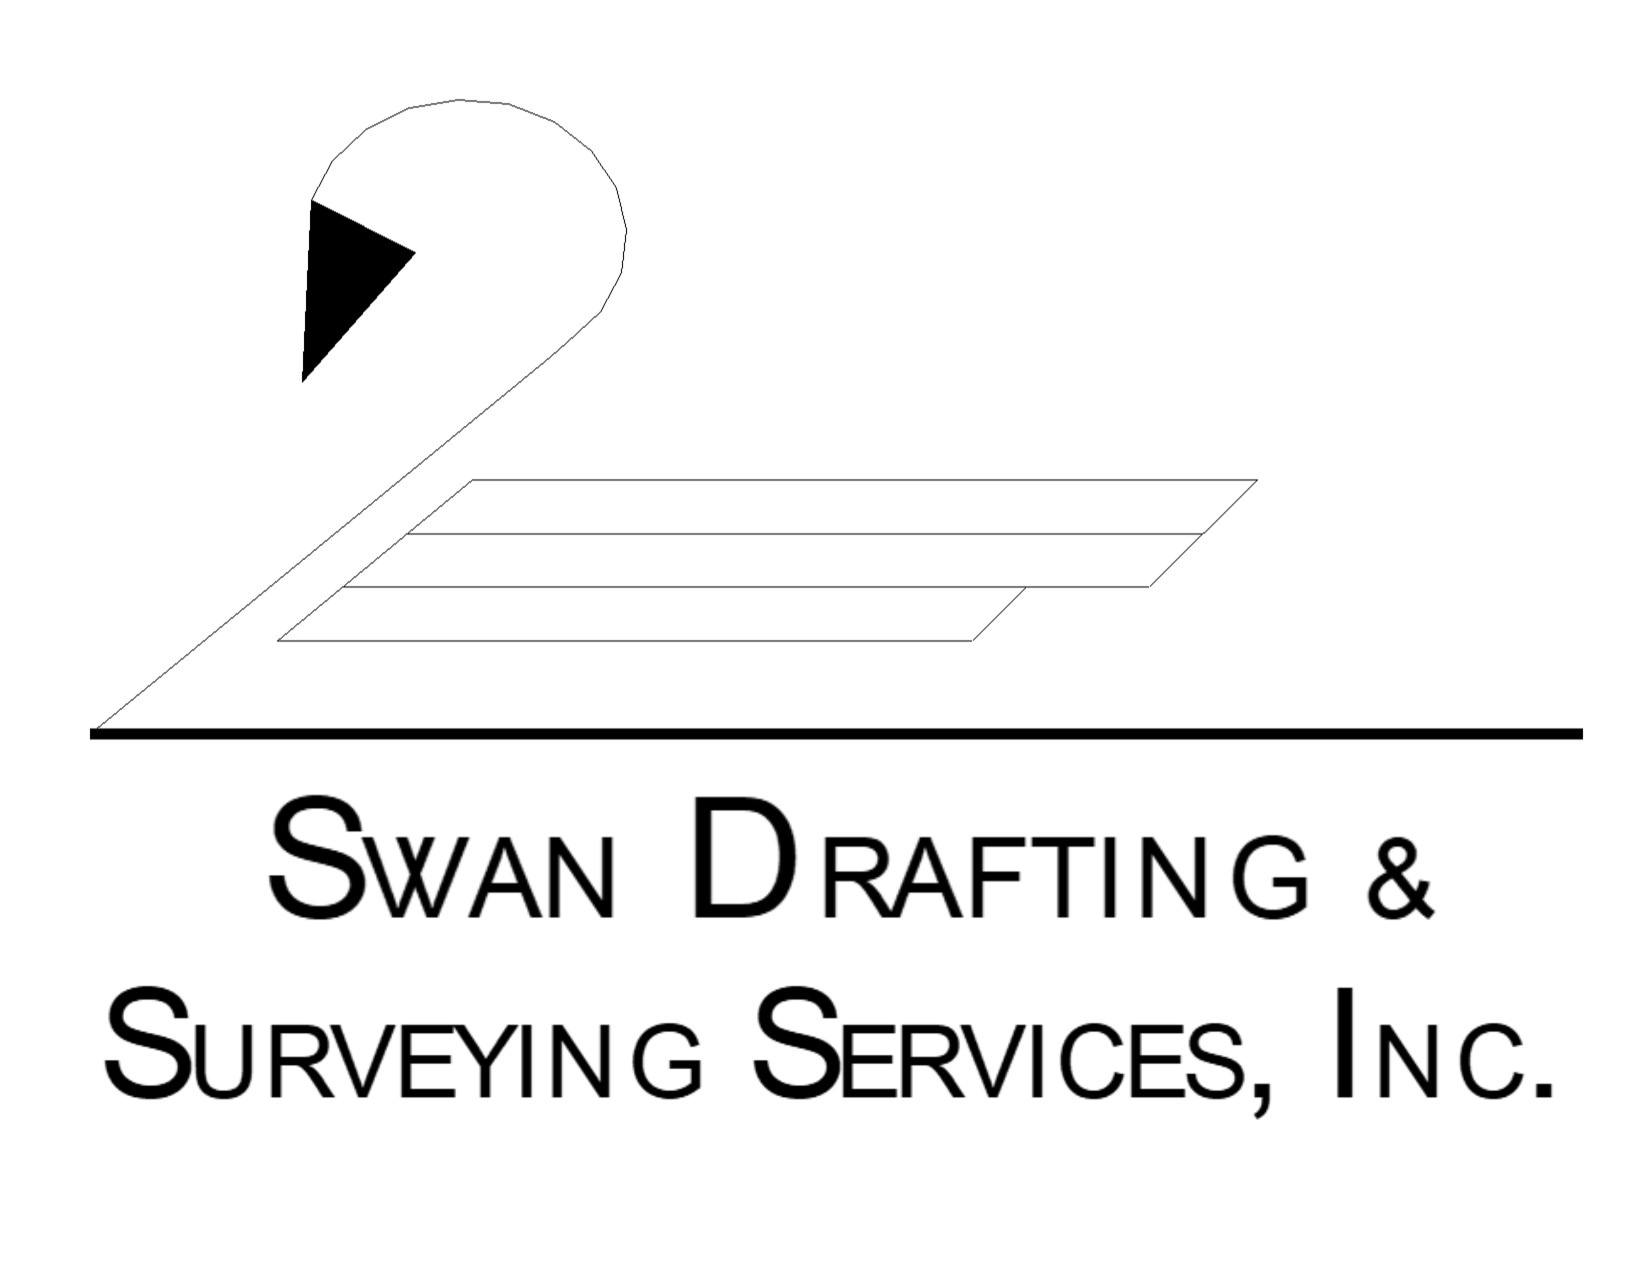 Swan Drafting & Surveying Services Inc